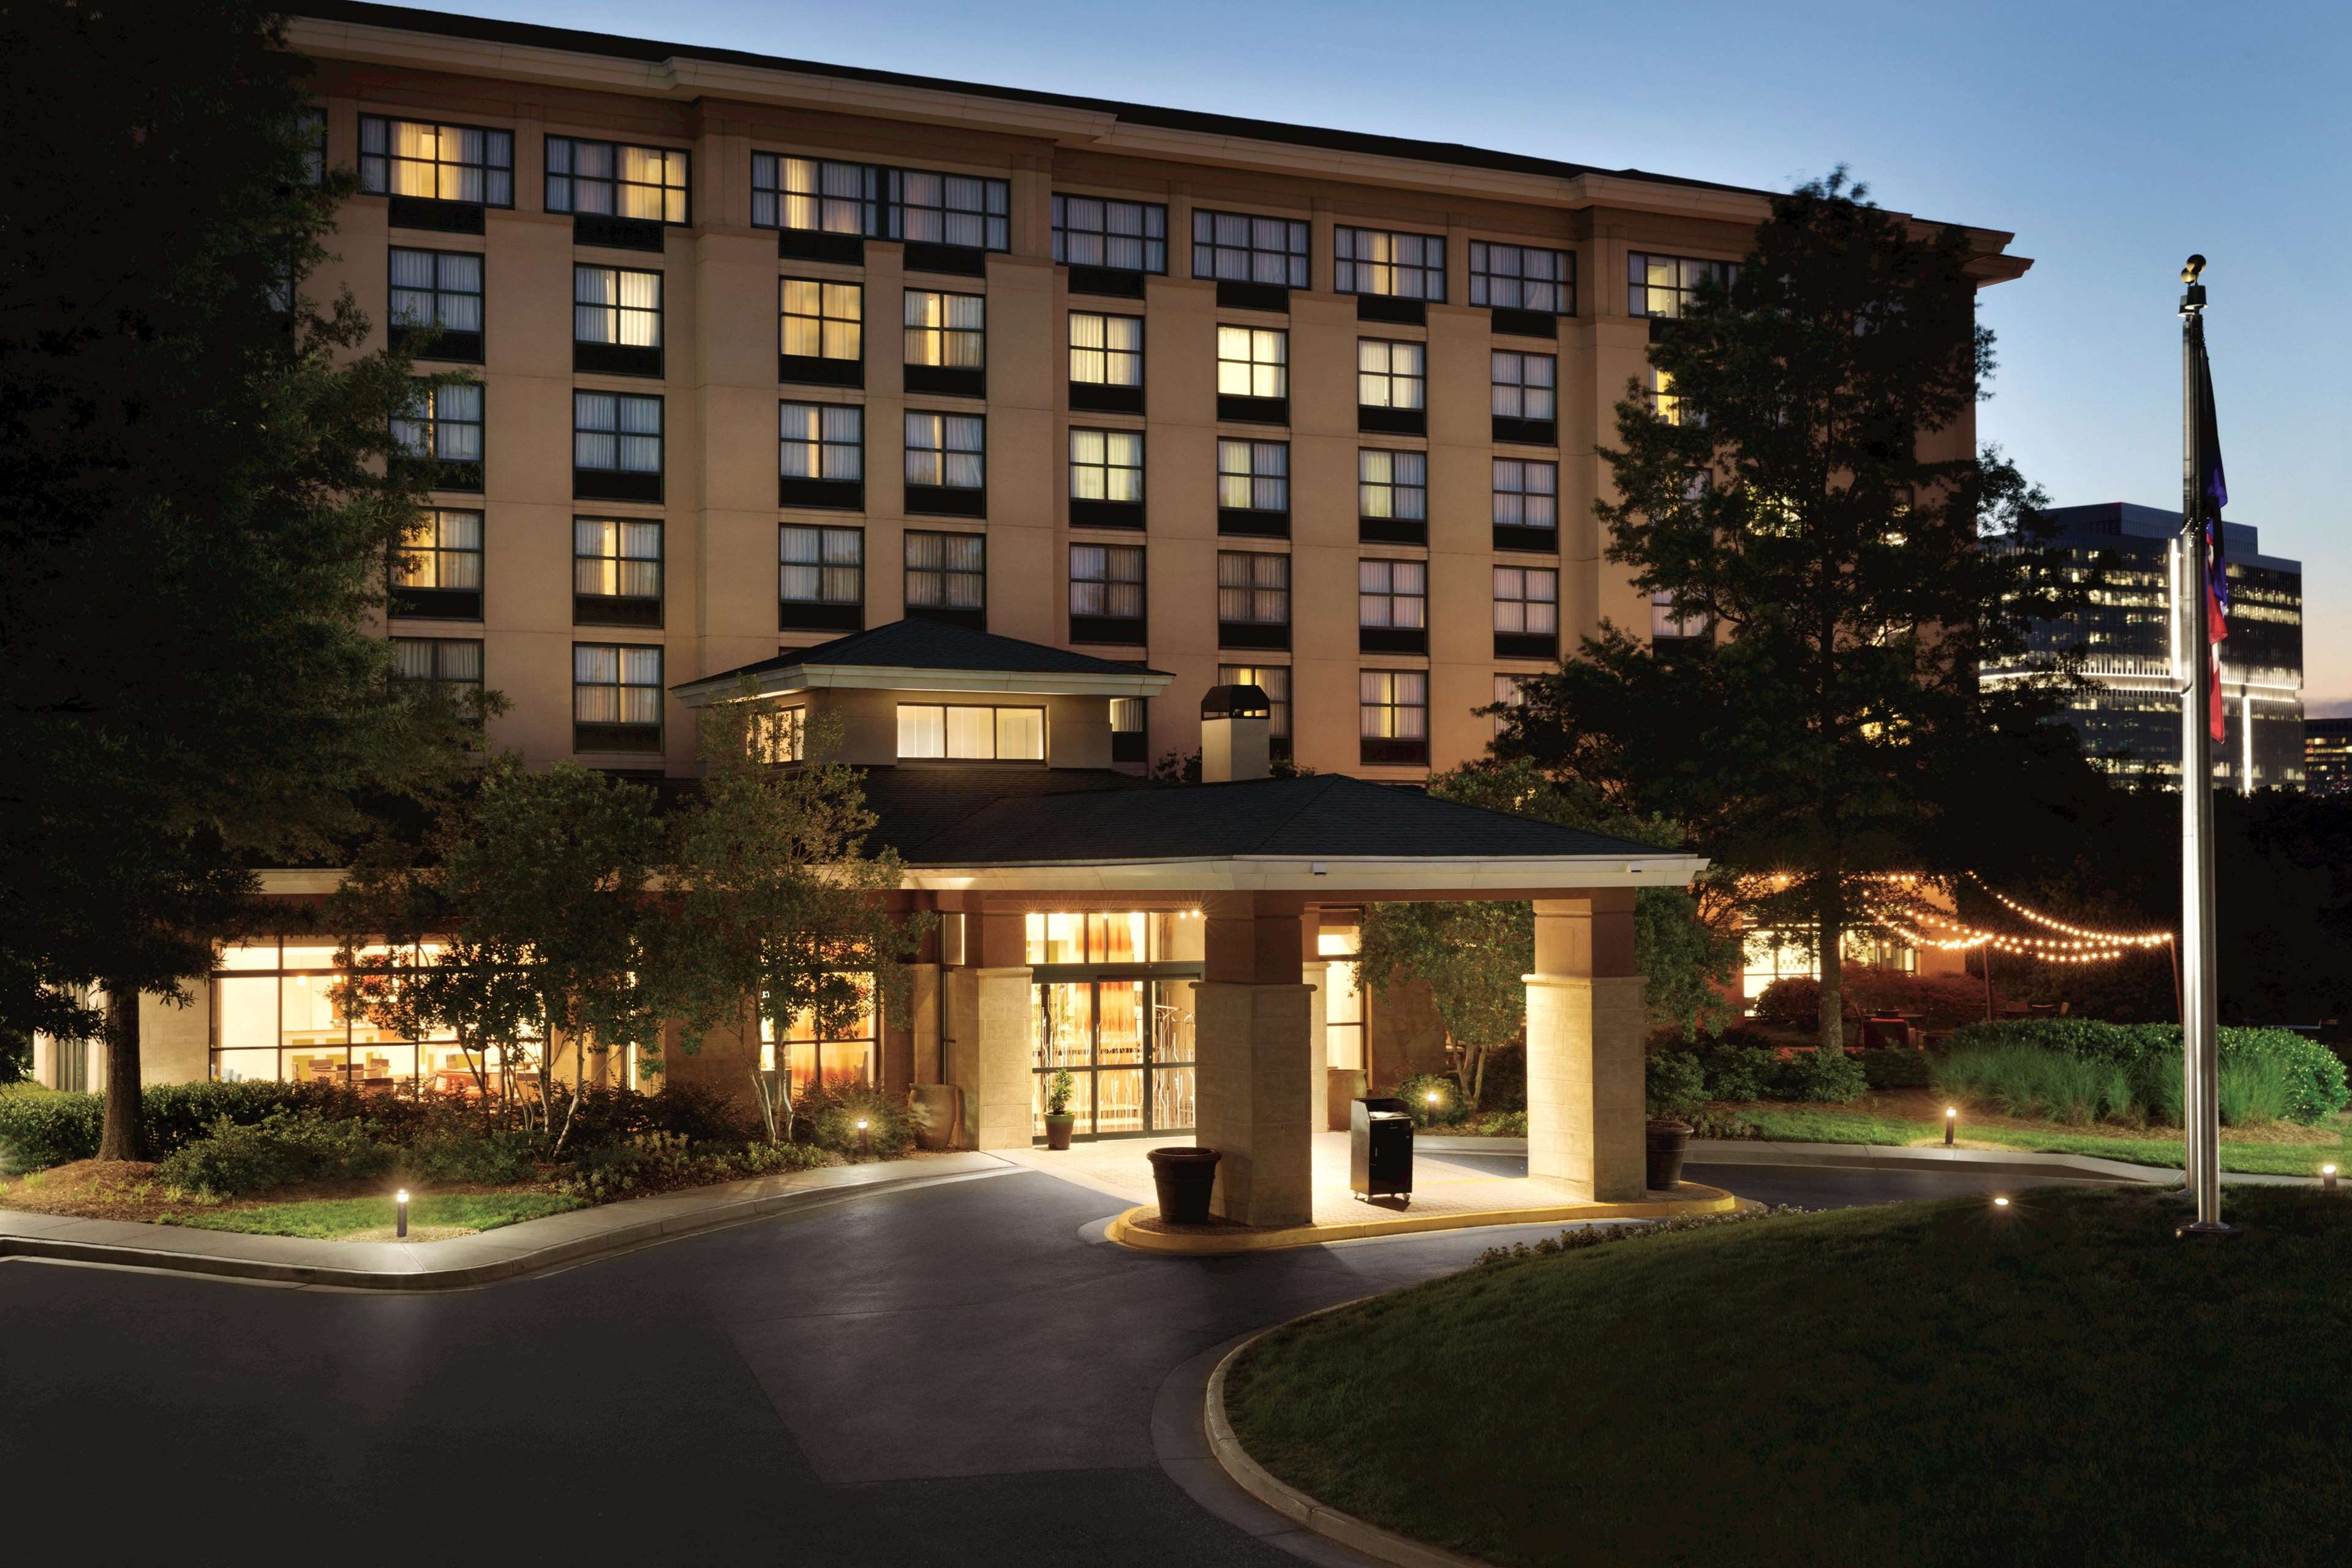 Hilton Garden Inn Atlanta Perimeter Center Atlanta